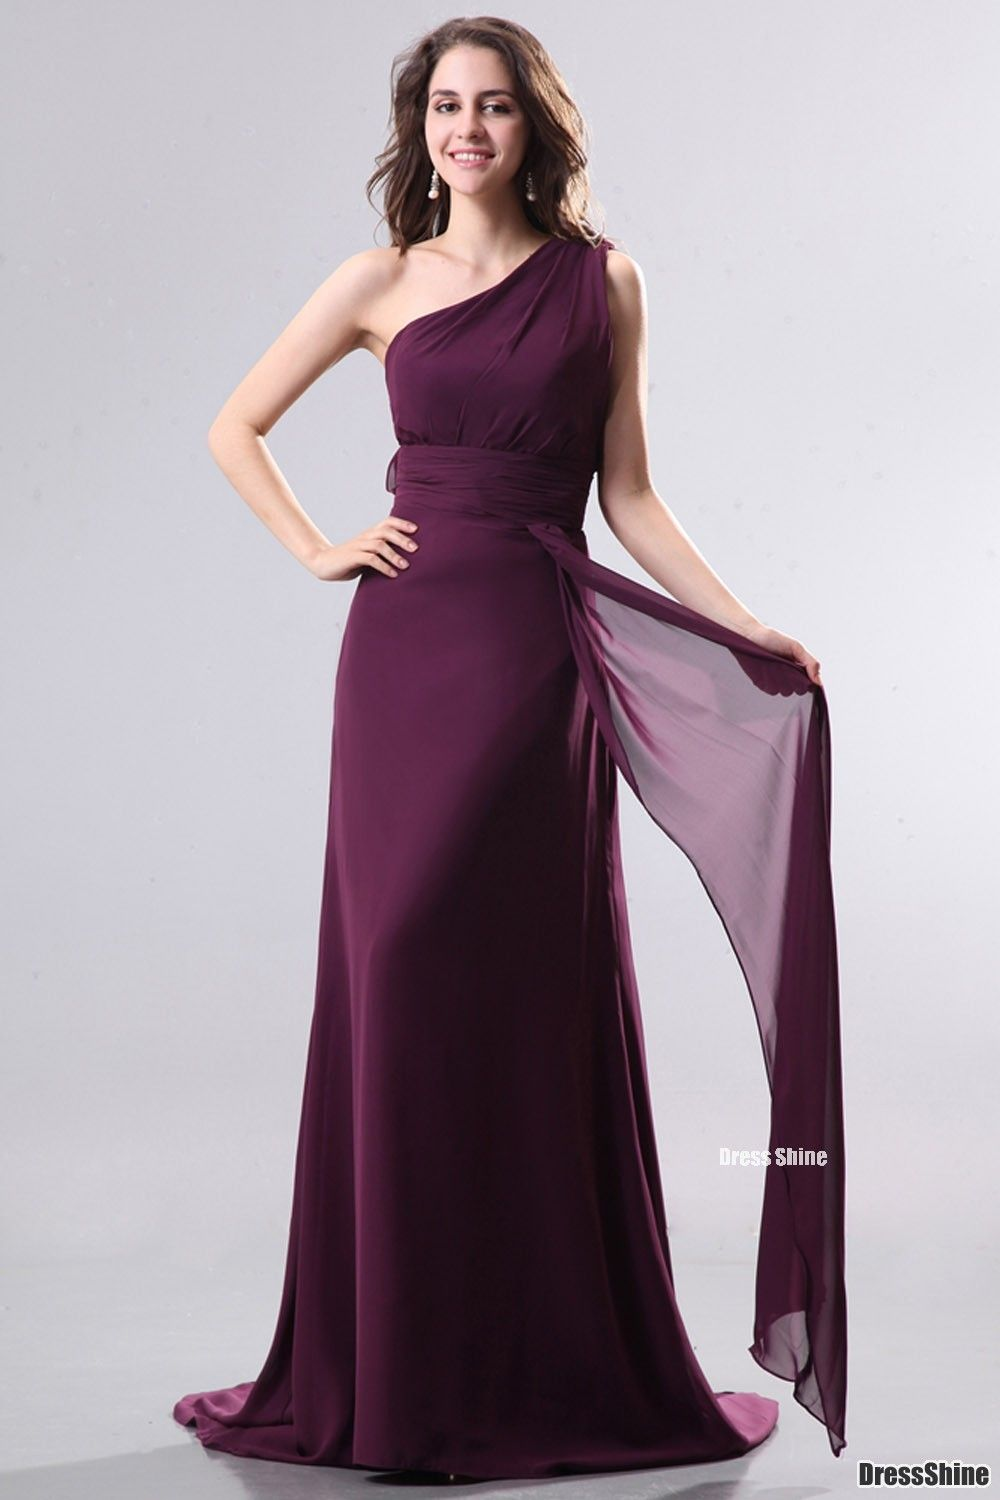 Bridesmaid dress bridesmaid dresses bridesmaid dresses pinterest